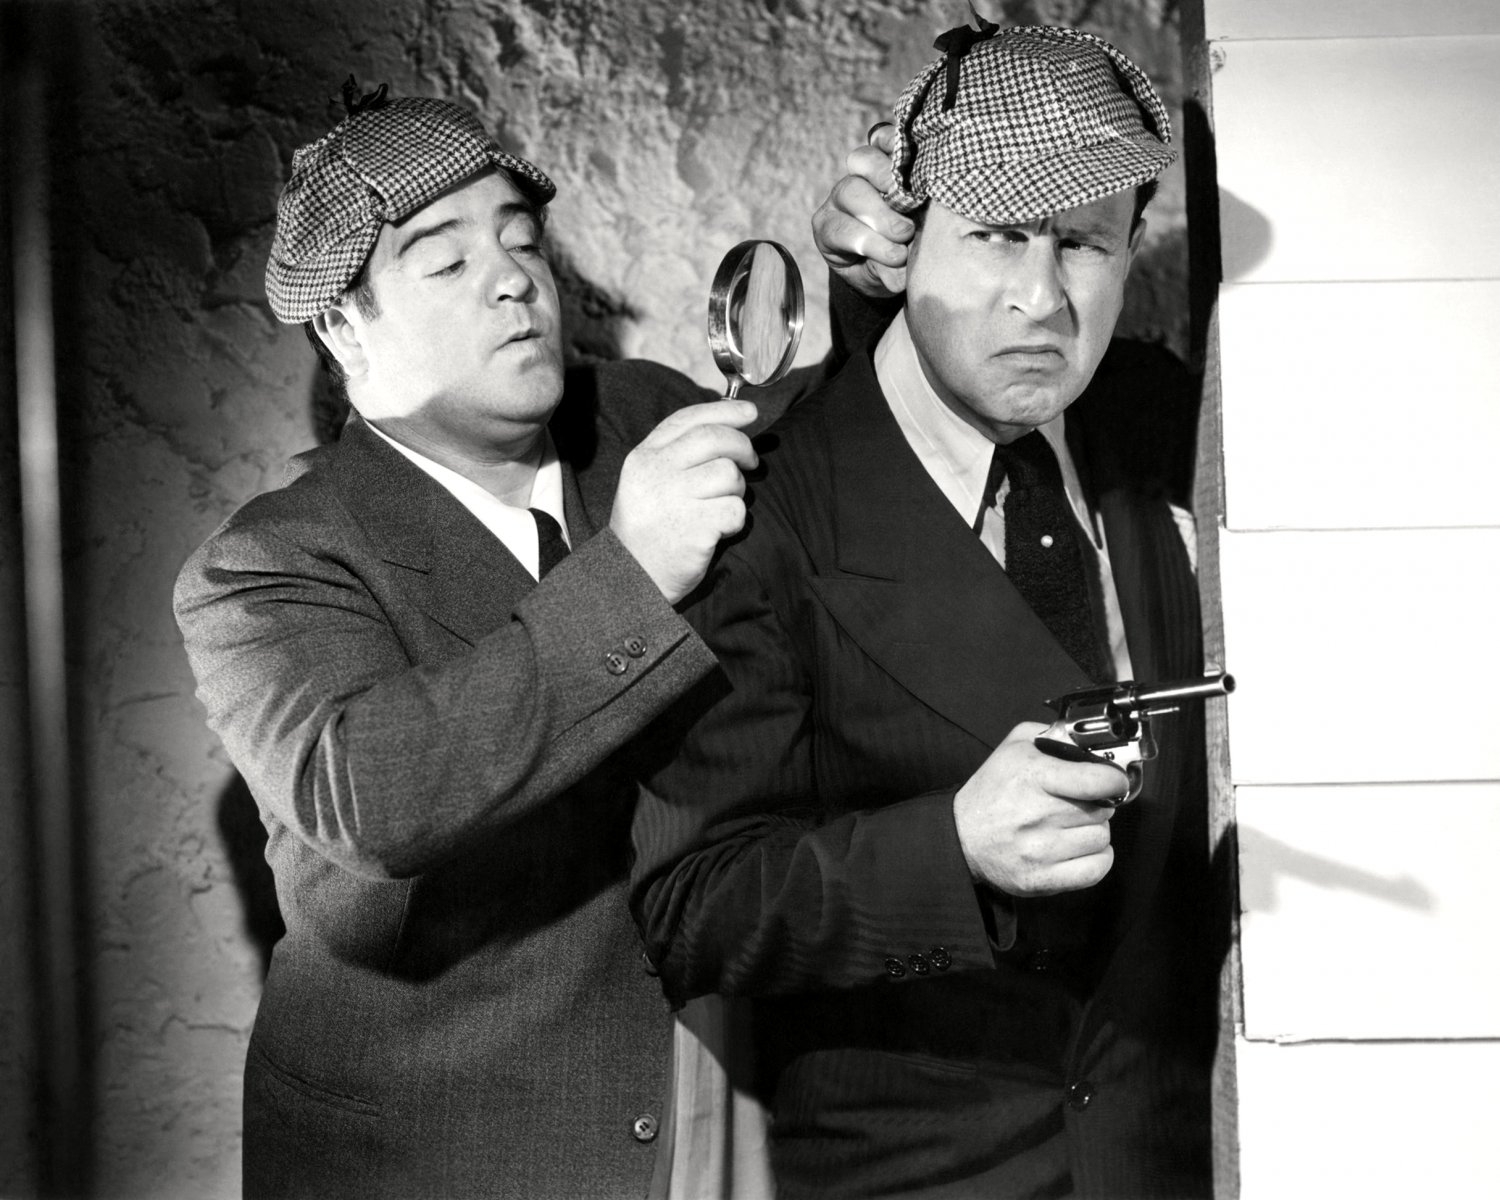 """BUD ABBOTT AND LOU COSTELLO IN THE 1942 FILM """"WHO DONE IT? - 8X10 PHOTO (CC-147)"""